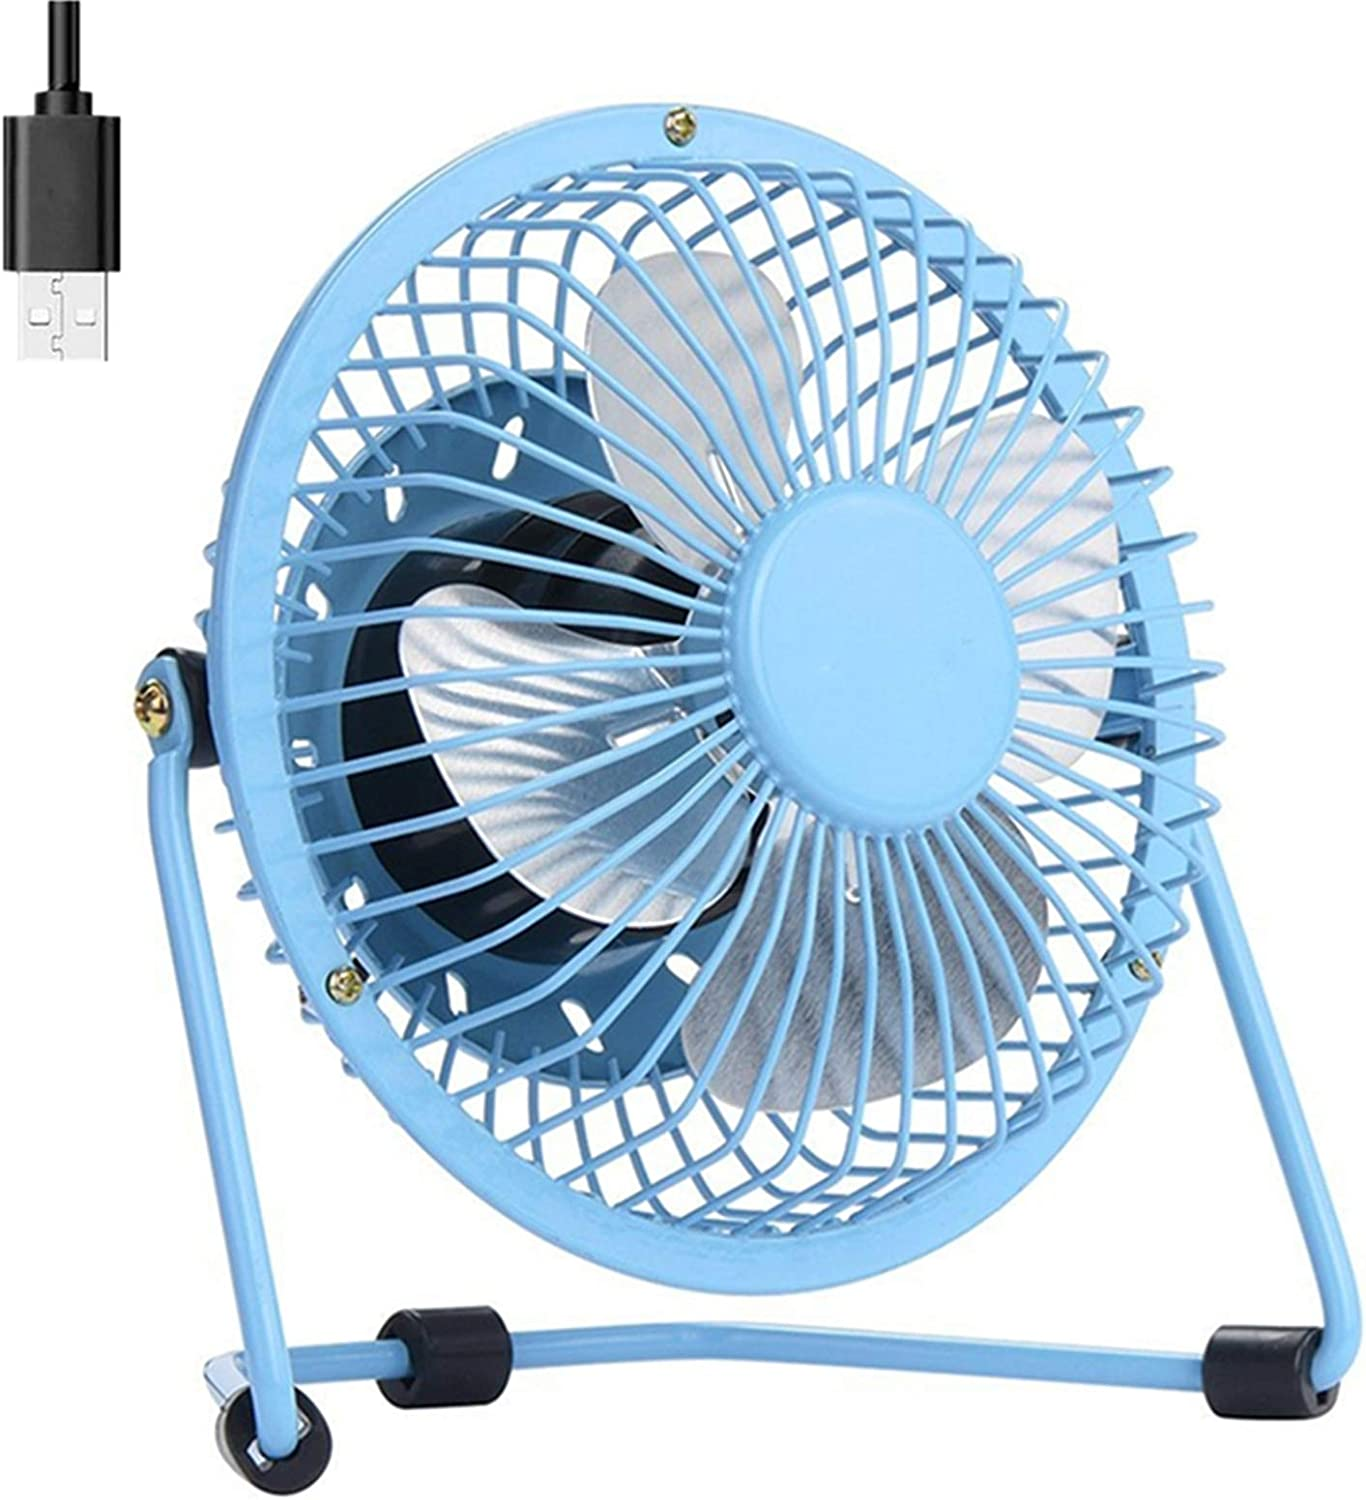 USB Fan 4 Inch Mini USB Desk Table Fan Personal Portable Desktop Cooling Fan Powered by USB PC Netbook for Camping Home Office Outdoor Travel, Strong Wind, Blue